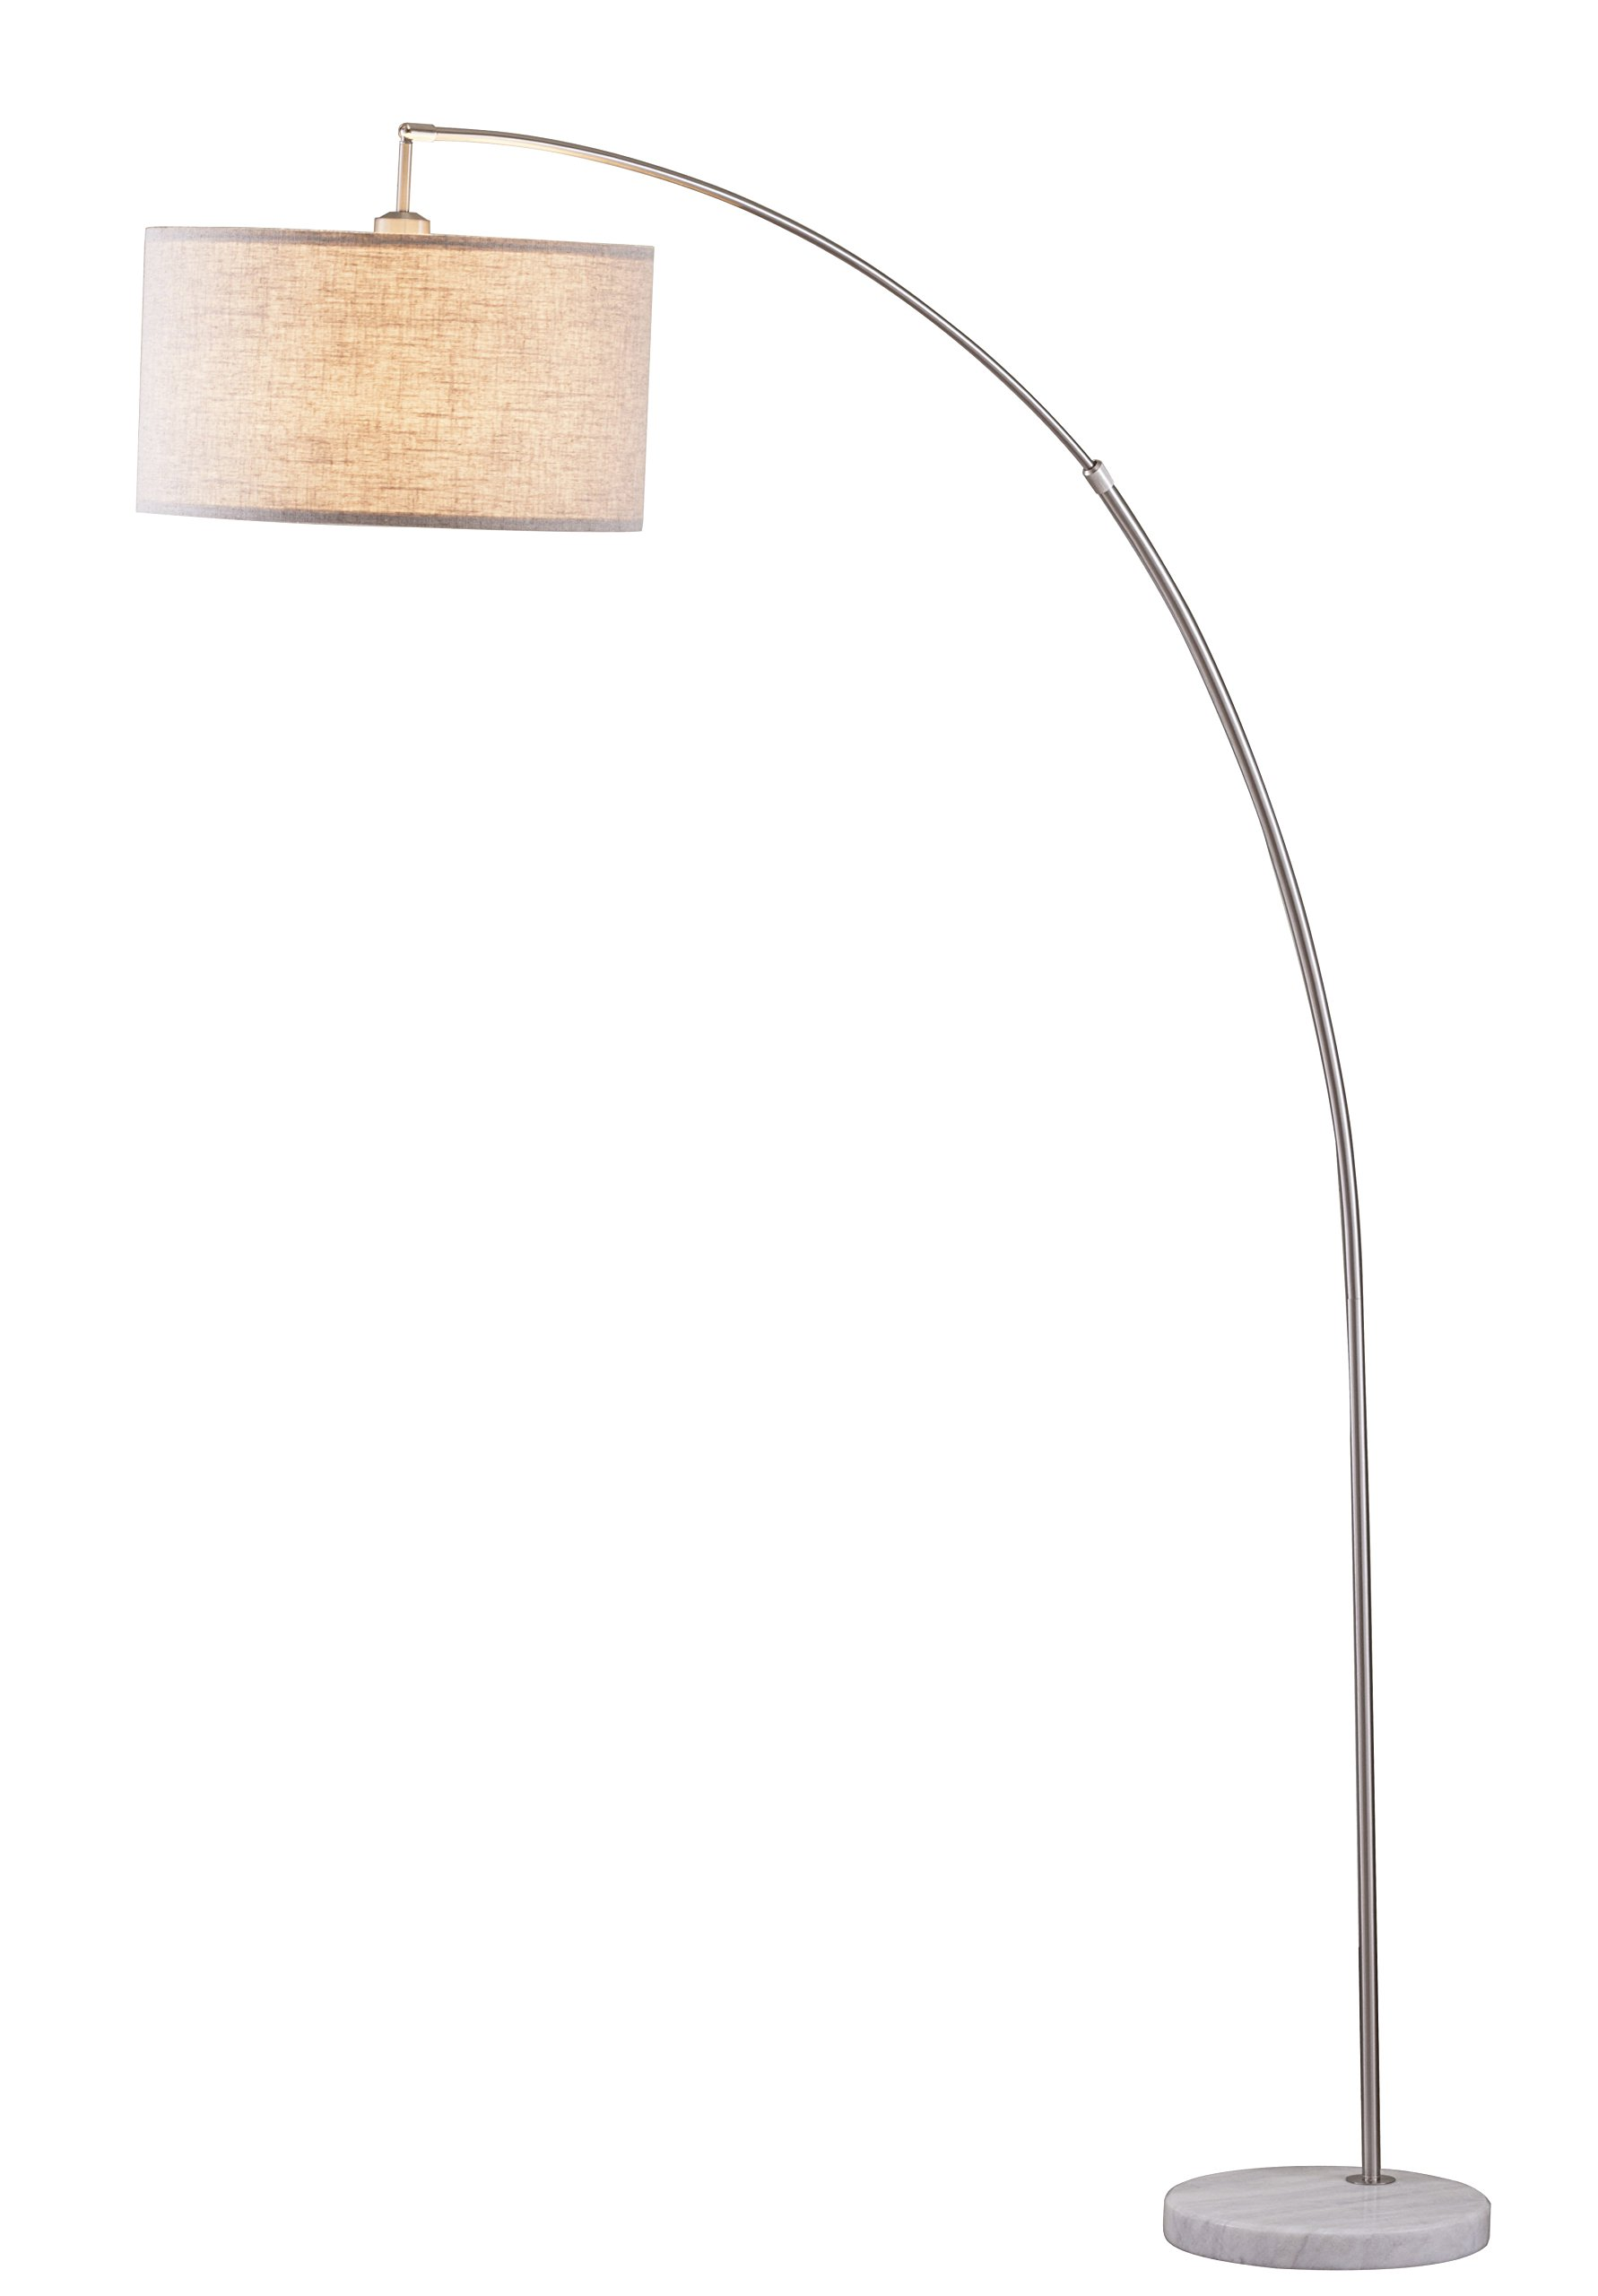 Major-Q 6931SN-LED 81'' H Steel Adjustable Arching Floor Lamp, by Major-Q (Image #1)